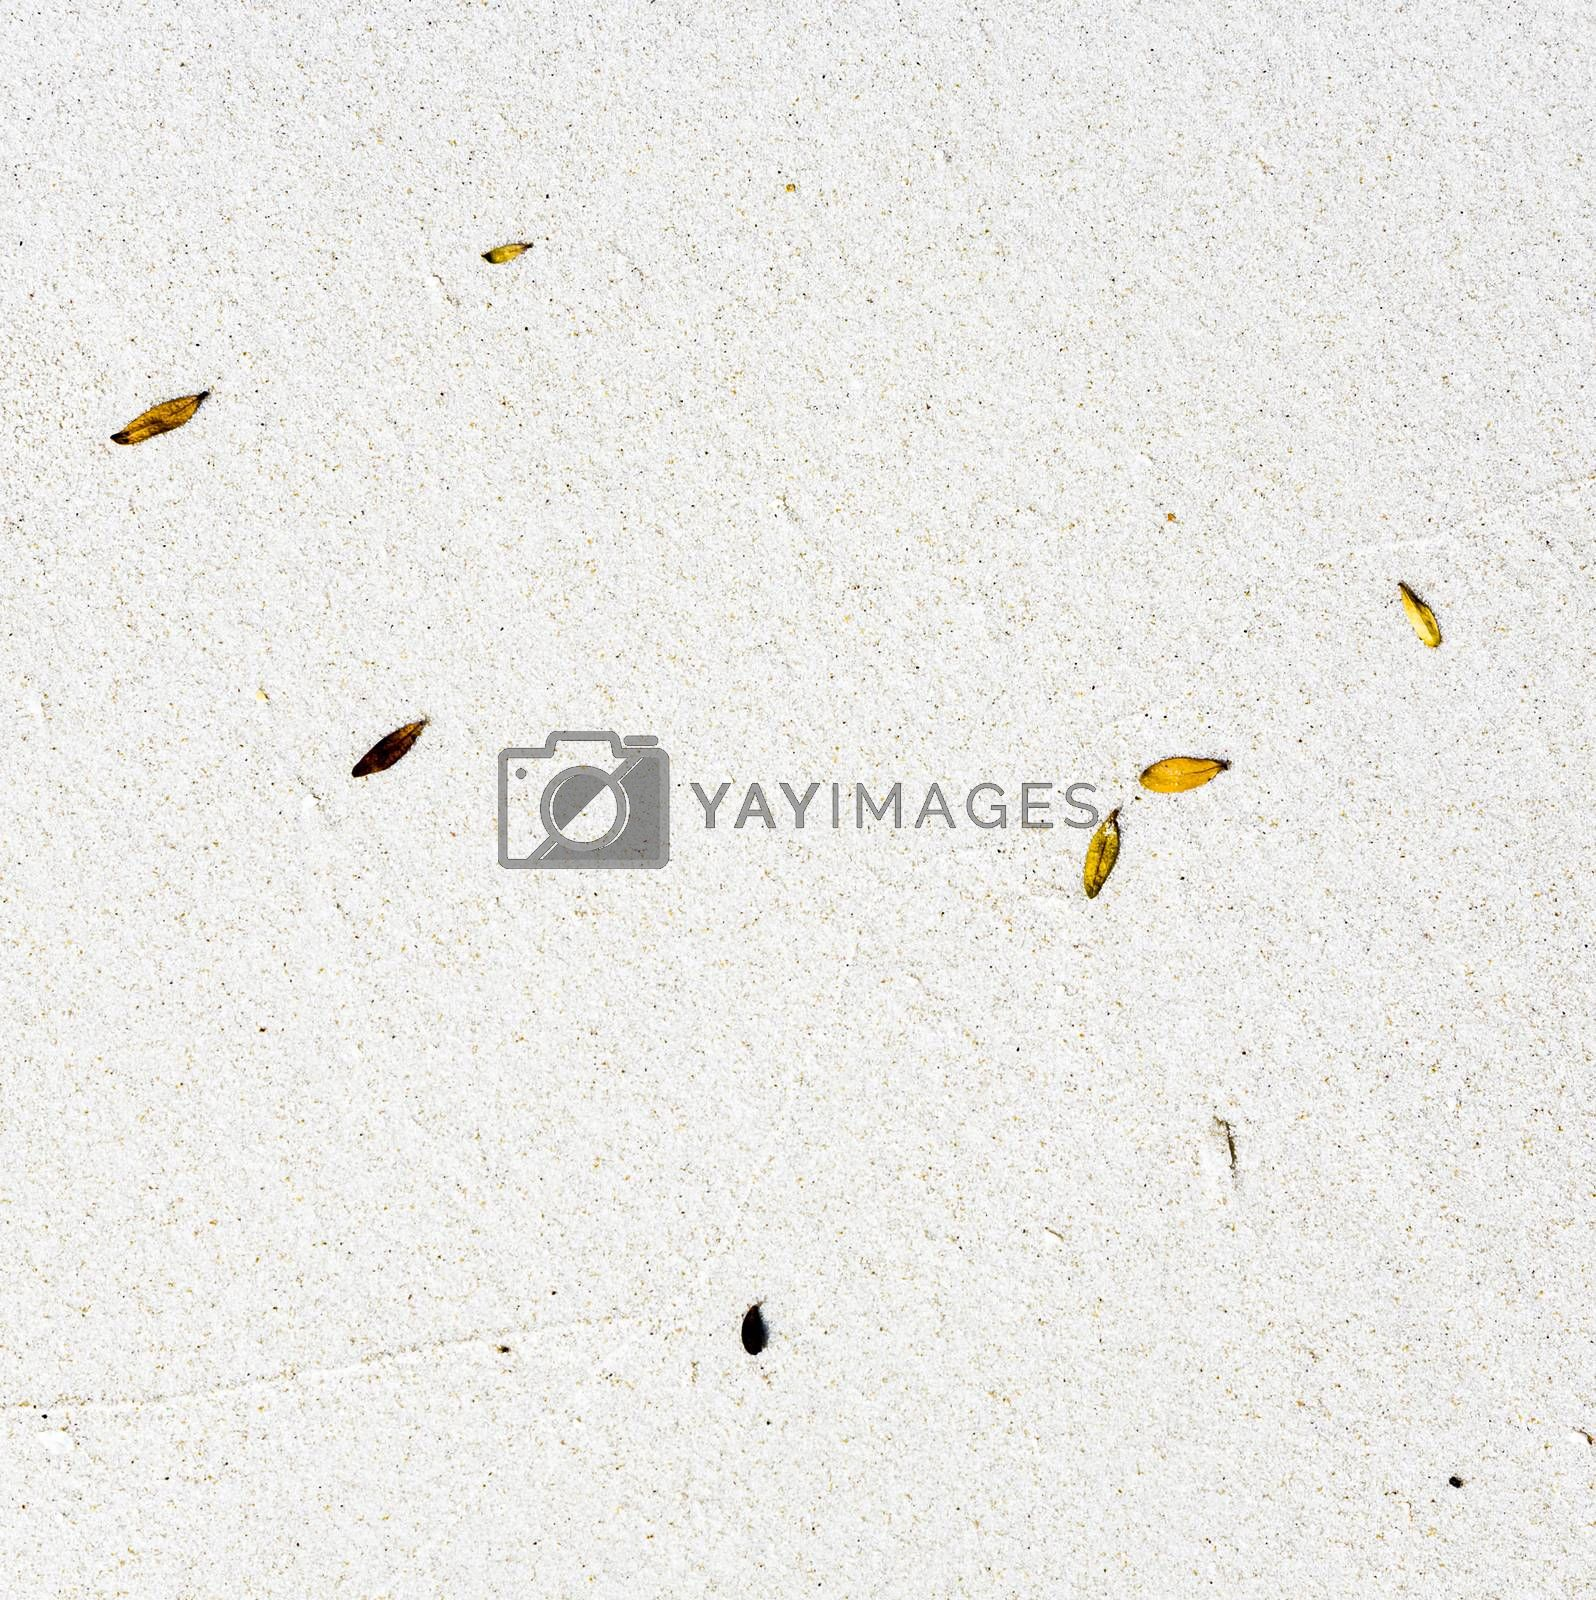 Royalty free image of beach with arrangement of leaves by meinzahn